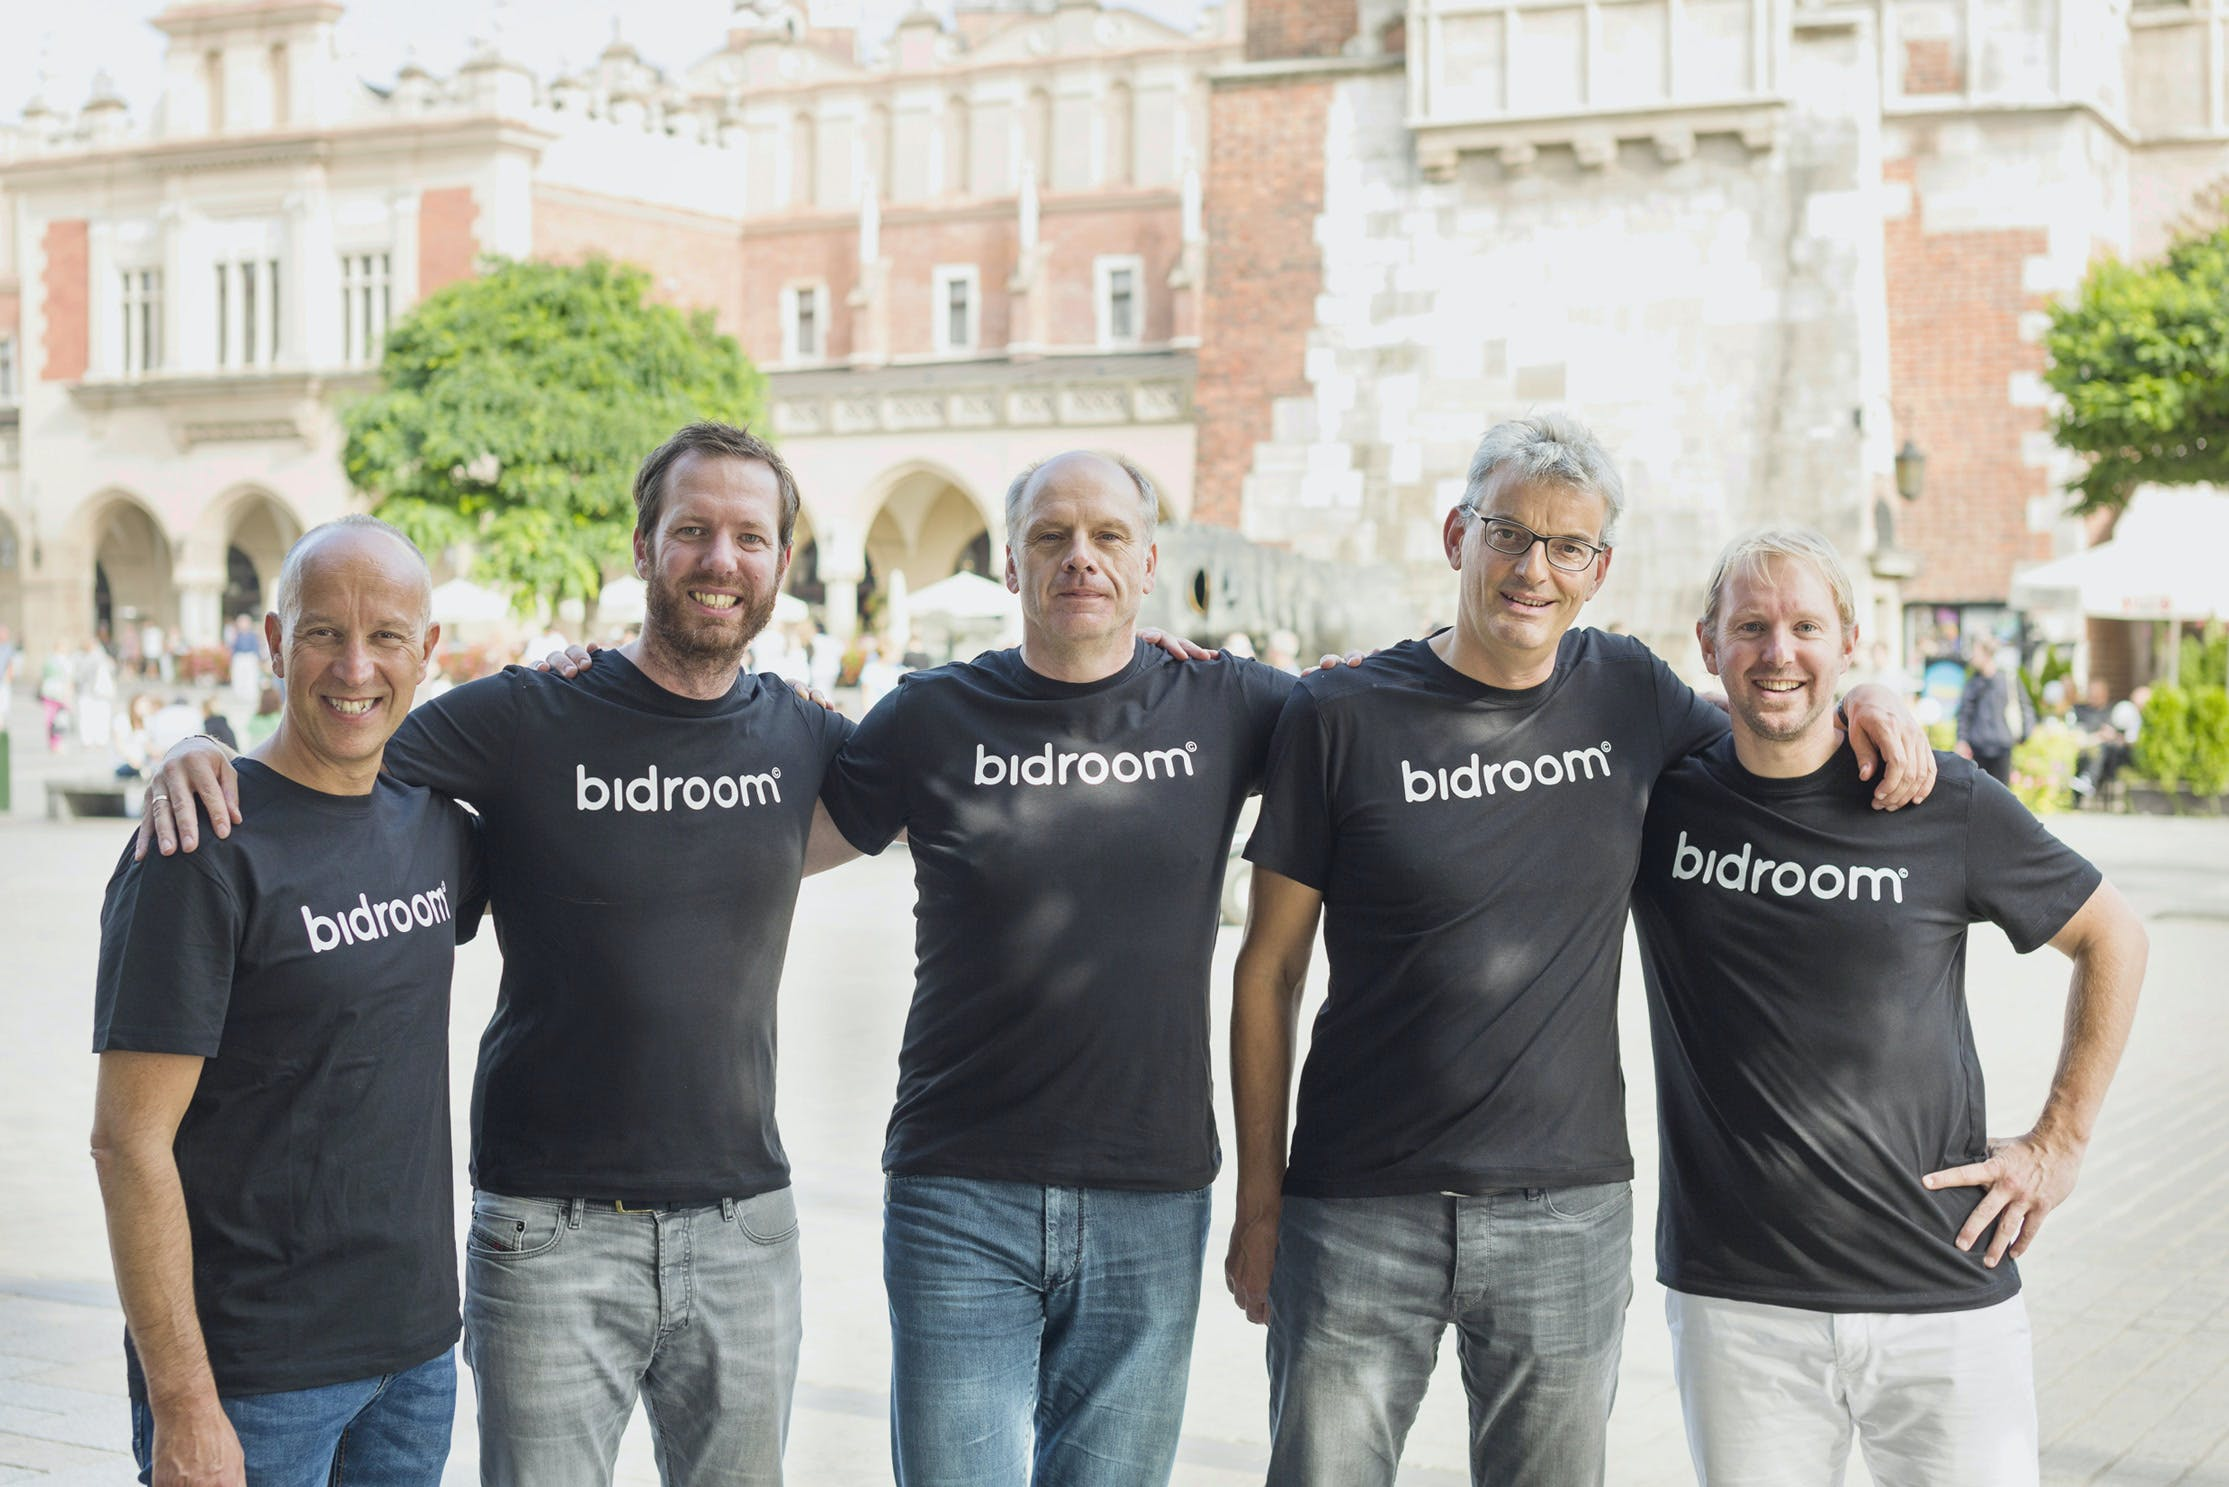 New Board Of Directors For Bidroom